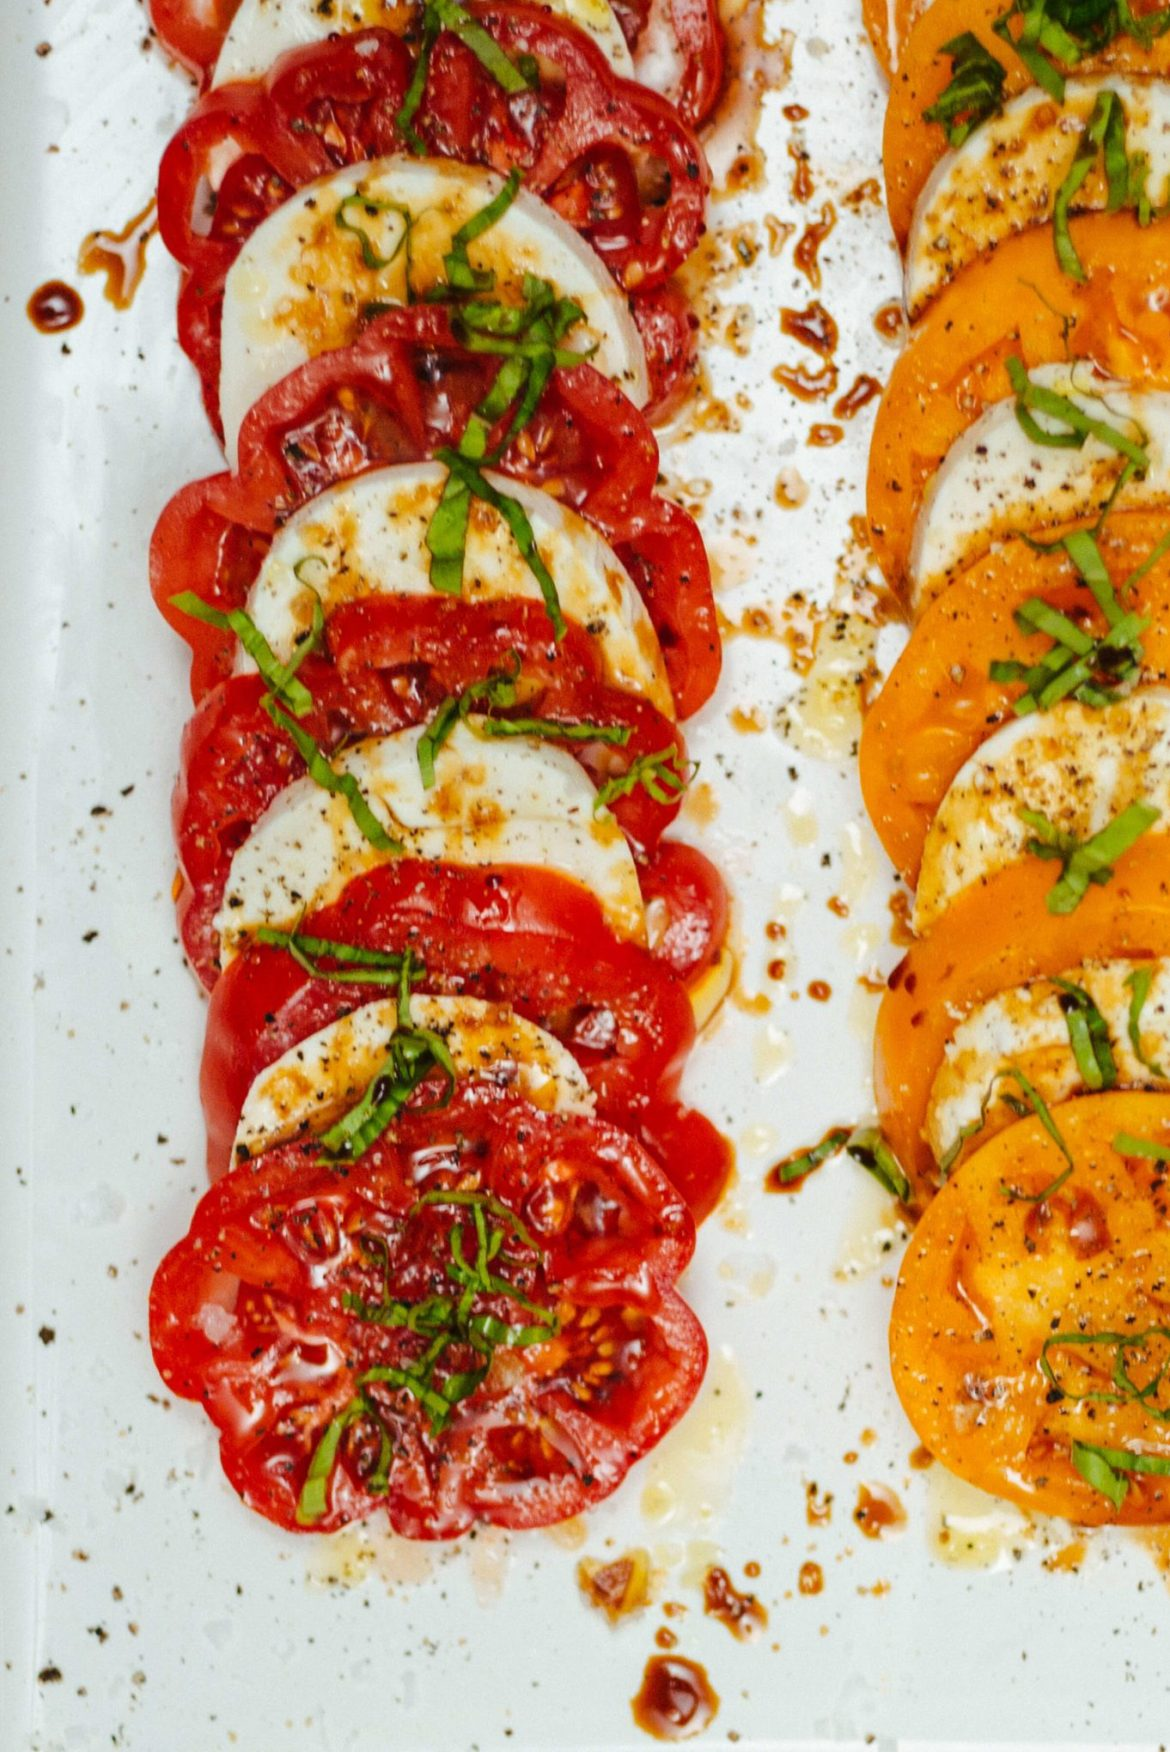 Caprese salad on a white dish with heirloom tomatoes